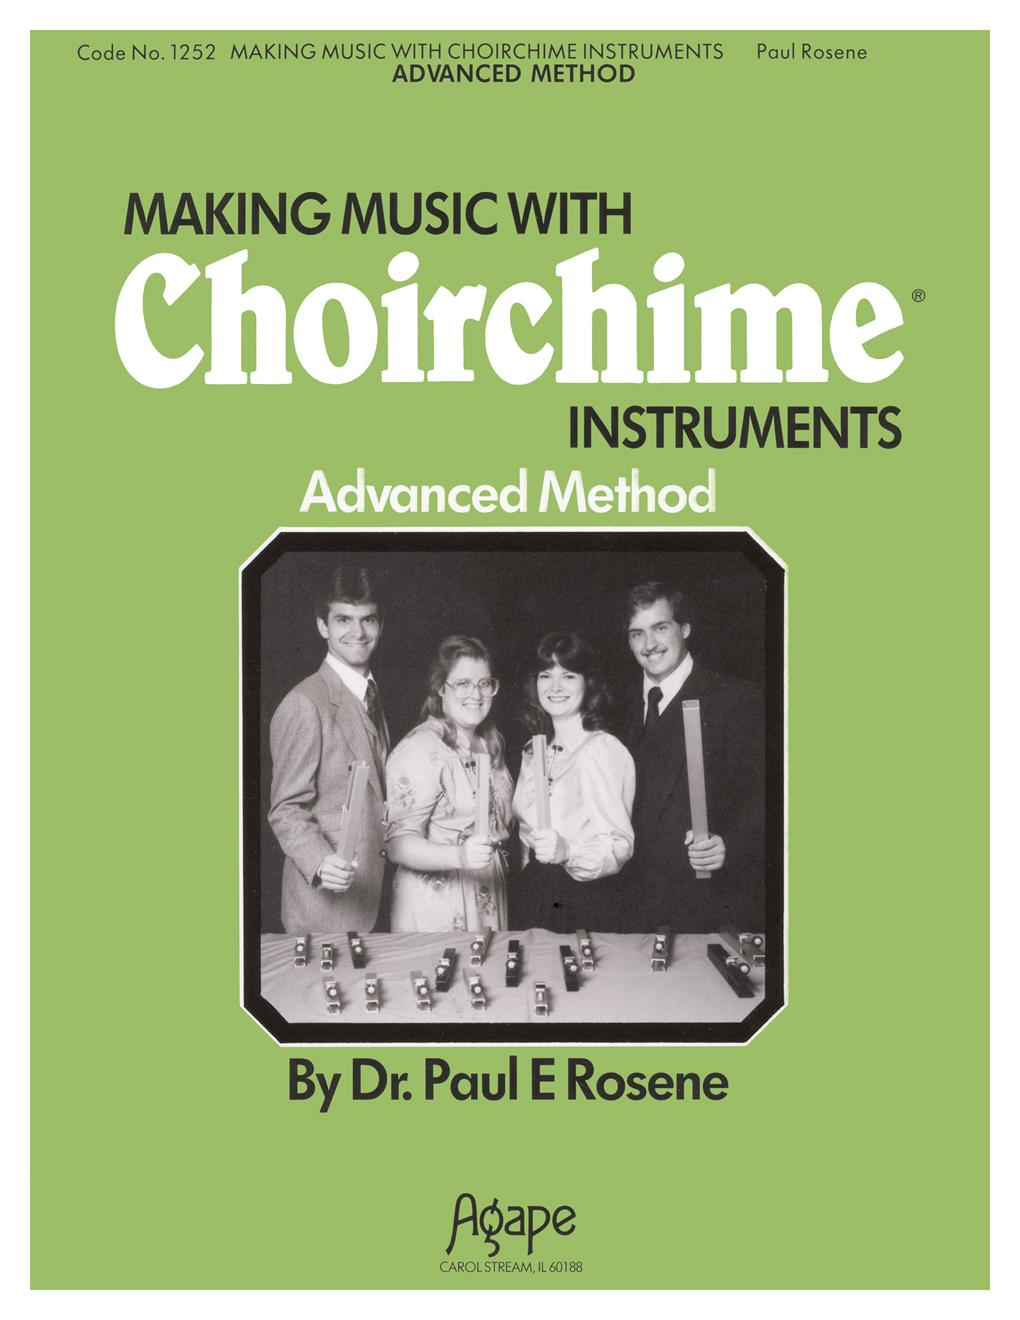 Making Music with Choirchimes - Advanced Method-Digital Version Cover Image